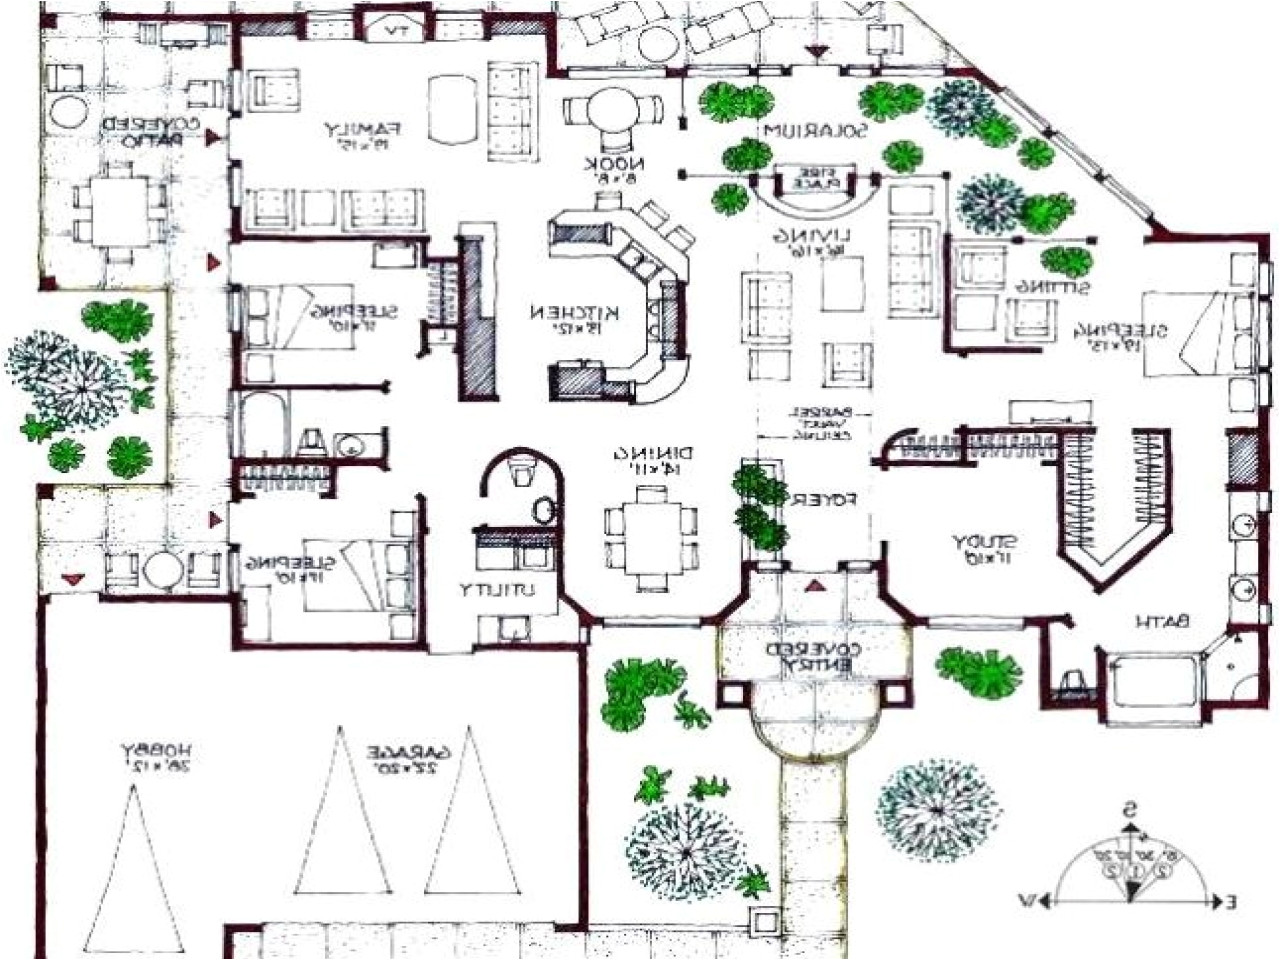 modern house floor plans there are more ultra modern house plans modern house floor plans lrg 39bb40bfa40eb0b6